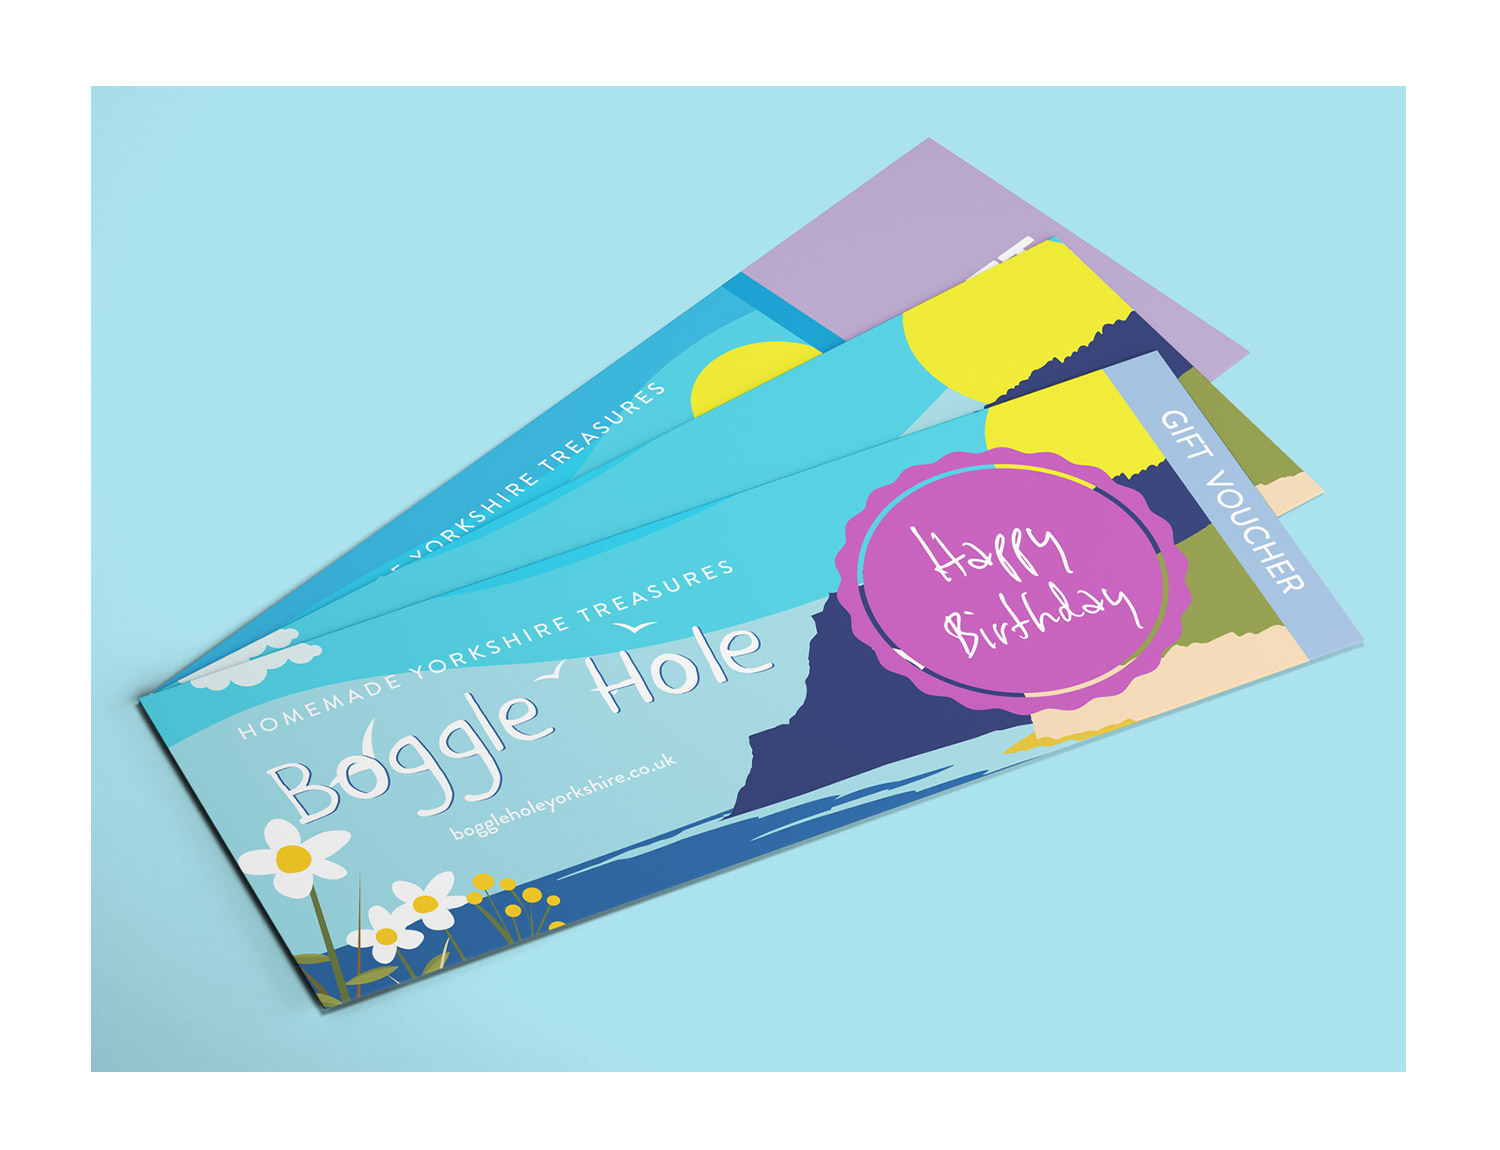 Boggle hole gift Vouchers